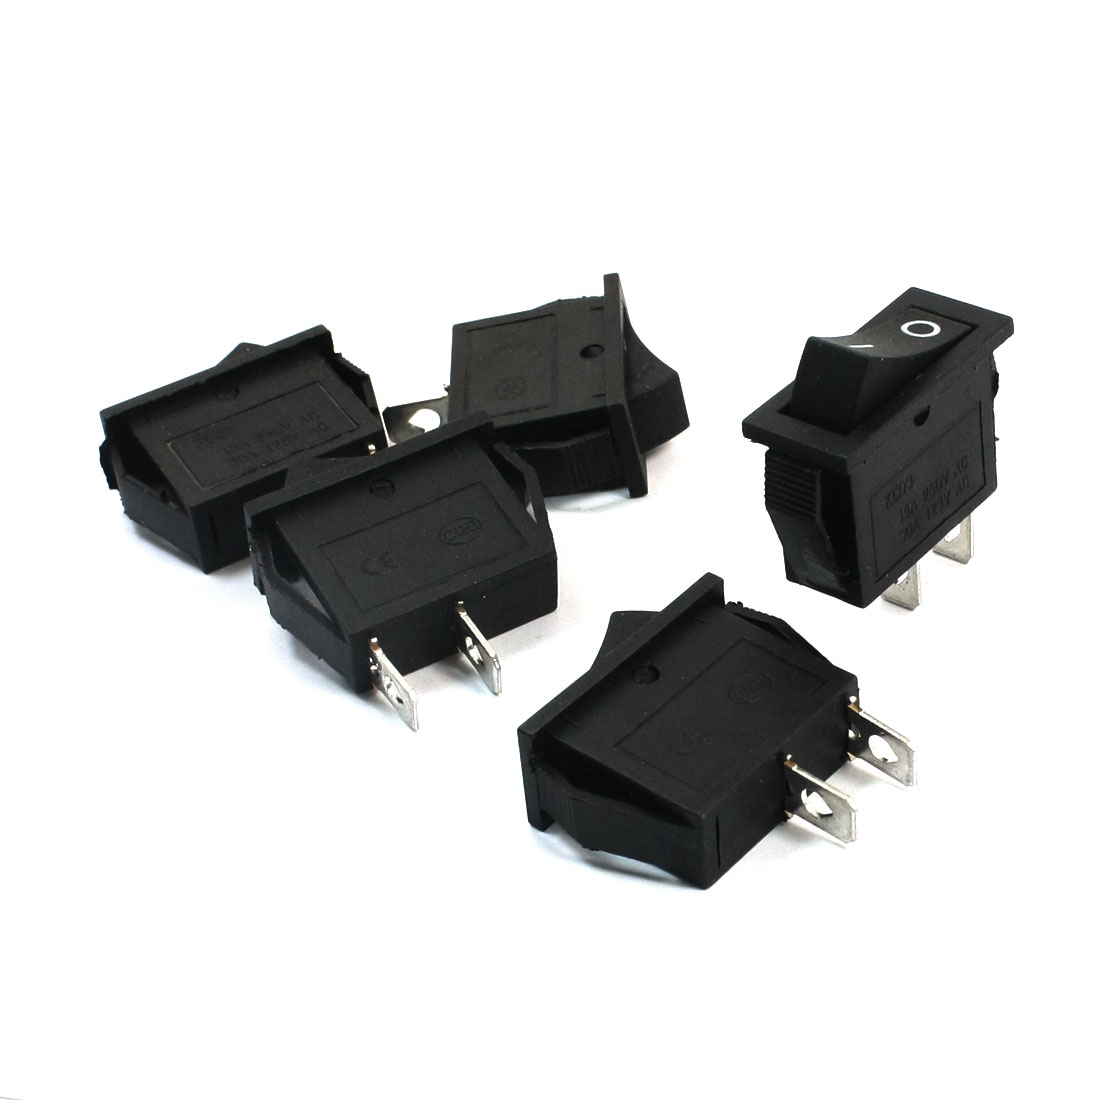 5pcs KCD3 AC 250V/125V 15A/30A Latching SPST on/off 2-Position Rocker Switch